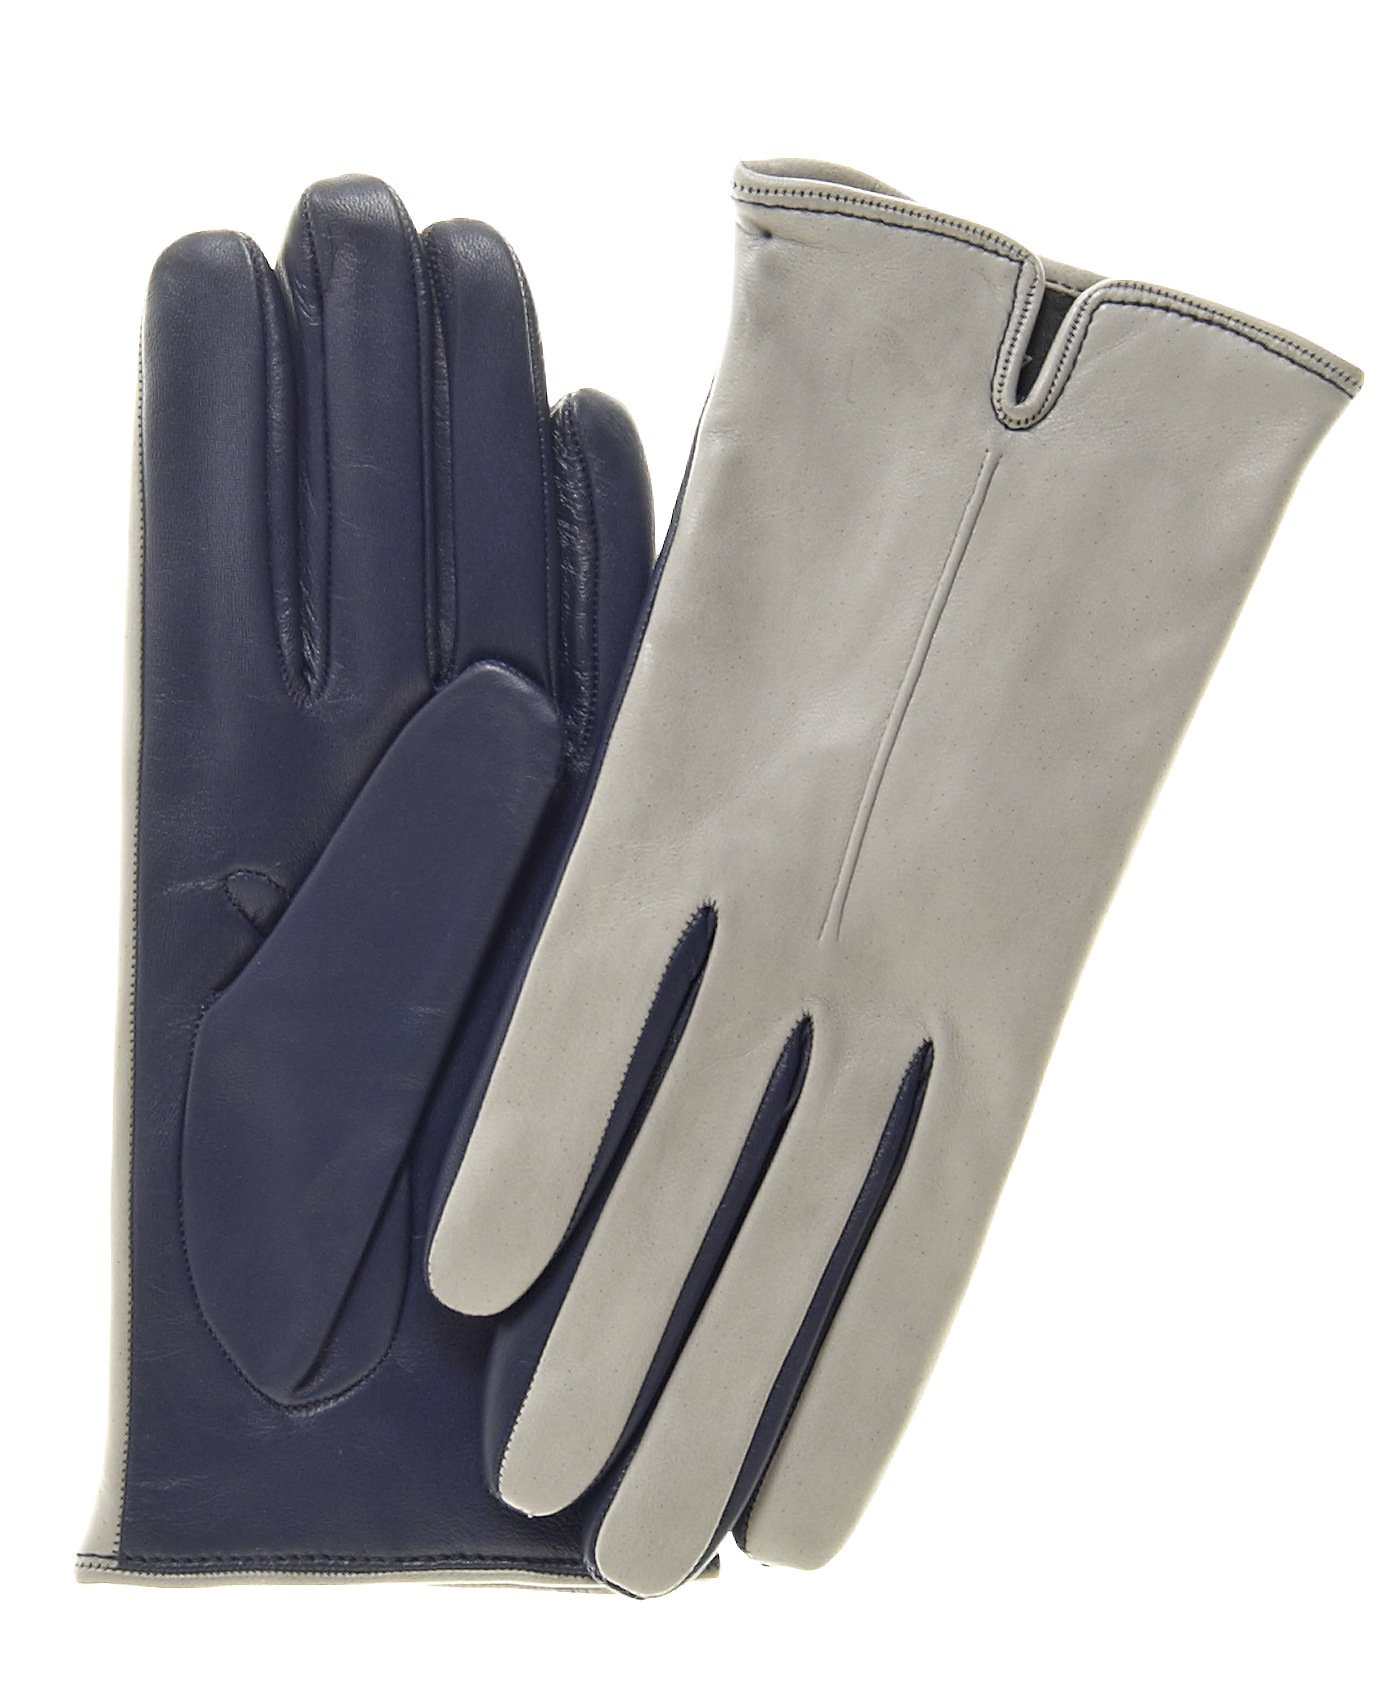 Fratelli Orsini Women's Touchscreen Italian Cashmere Lined Leather Gloves Size 6 Color Grey/Blue by Fratelli Orsini